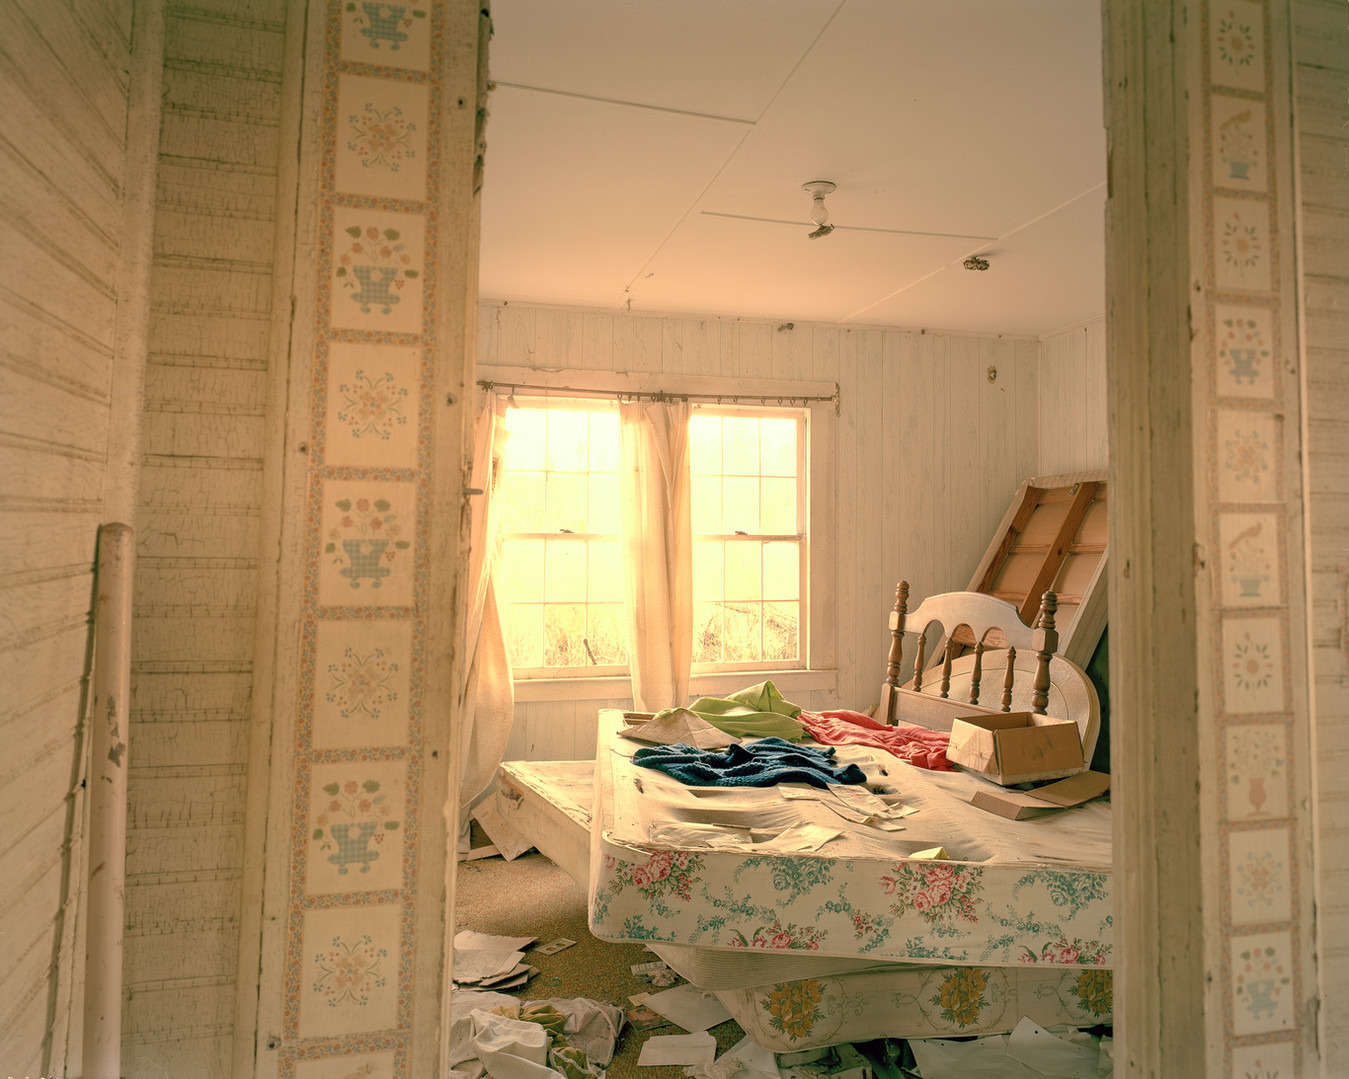 Abandoned House room v.1.jpg